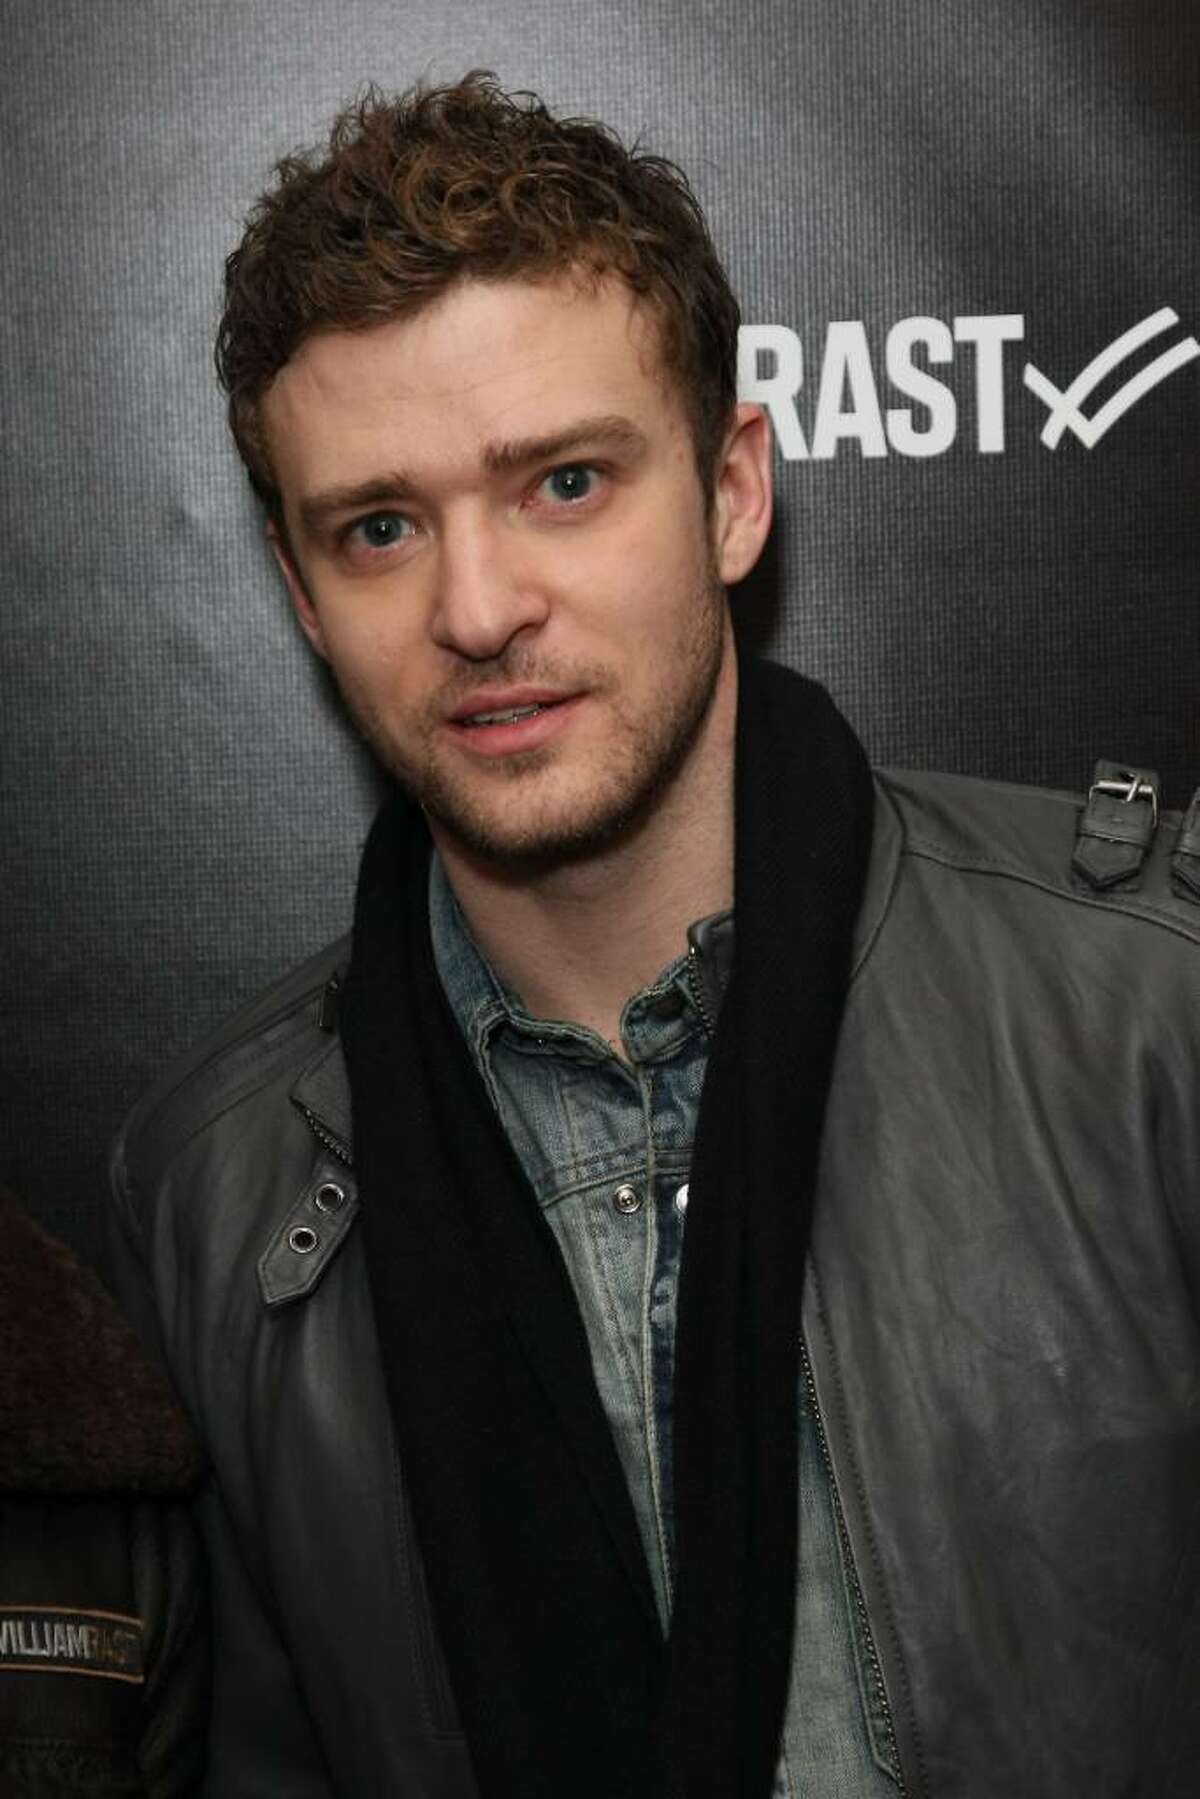 NEW YORK - FEBRUARY 17: Designer, actor and musician Justin Timberlake attends the William Rast Fall/Winter 2010 fashion show after party at Hudson Terrace on February 17, 2010 in New York City. (Photo by Neilson Barnard/Getty Images) *** Local Caption *** Justin Timberlake